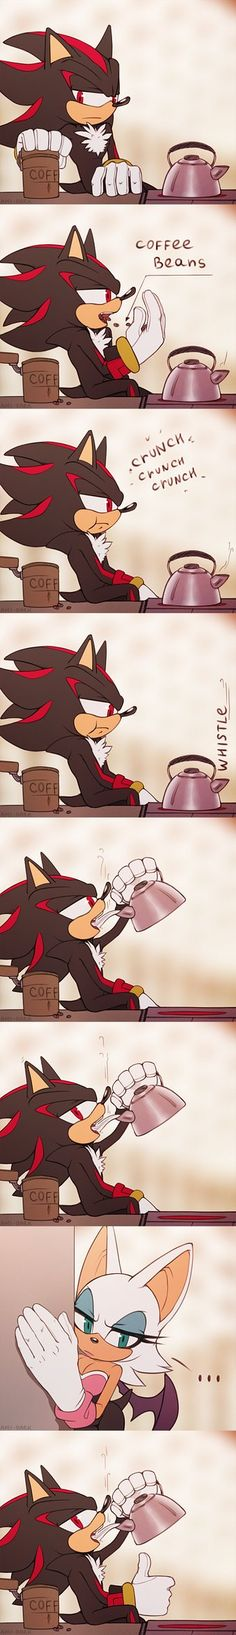 THE ULTIMATE COFFEE FORMULA by Ami-Dark.deviantart.com on @DeviantArt